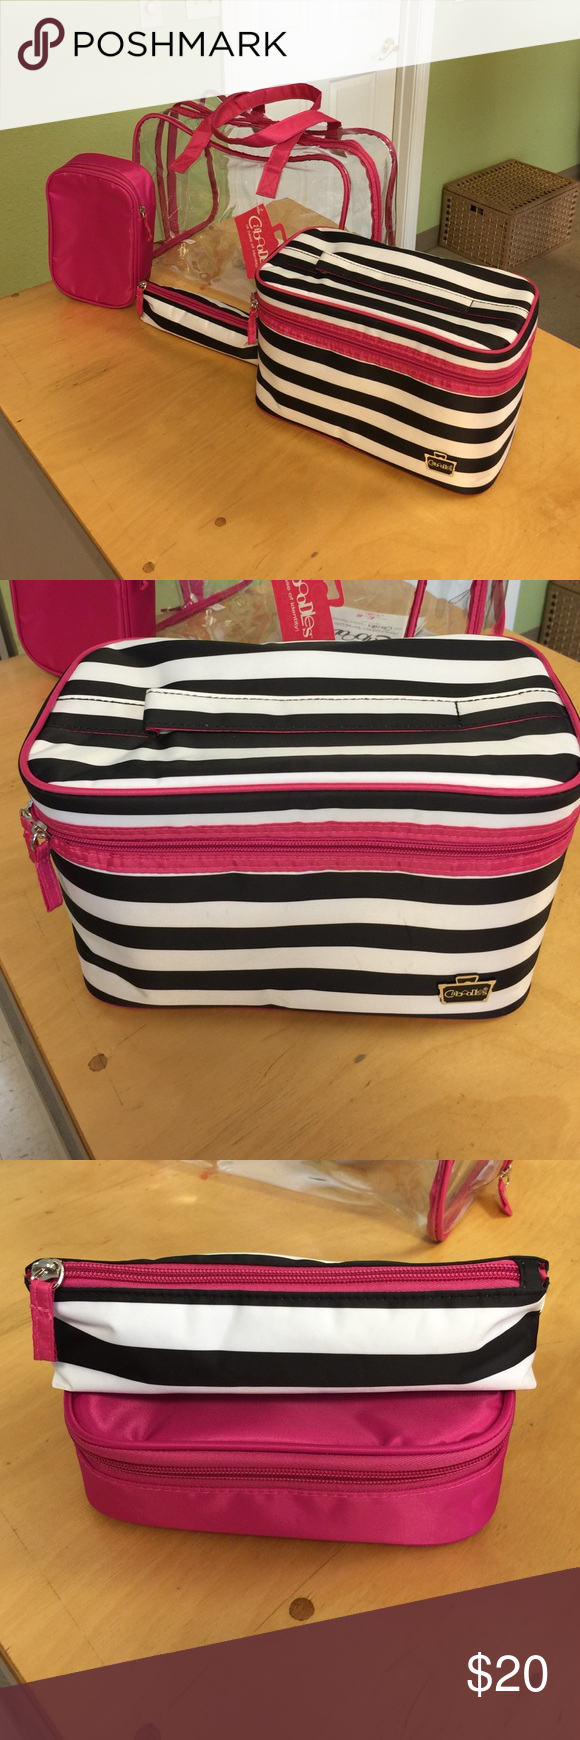 Caboodles travel case w/ travel makeup bags Cosmetic bags include: 1 large clear tote, 1 soft sided train case, 1 compact valet, 1 brush case caboodles  Bags Cosmetic Bags & Cases